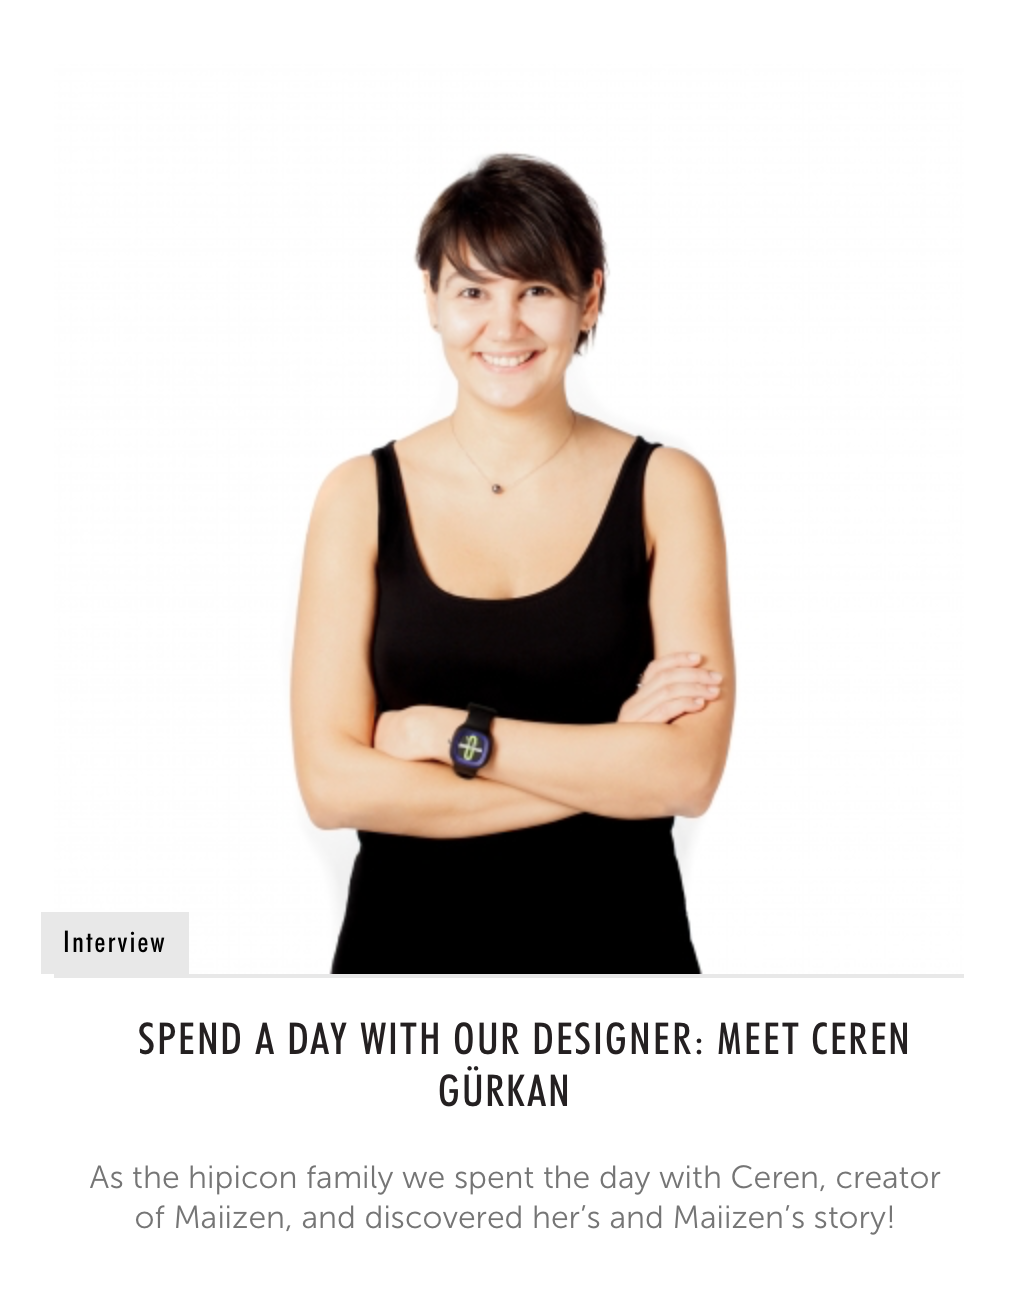 Spend a day with Ceren Gürkan